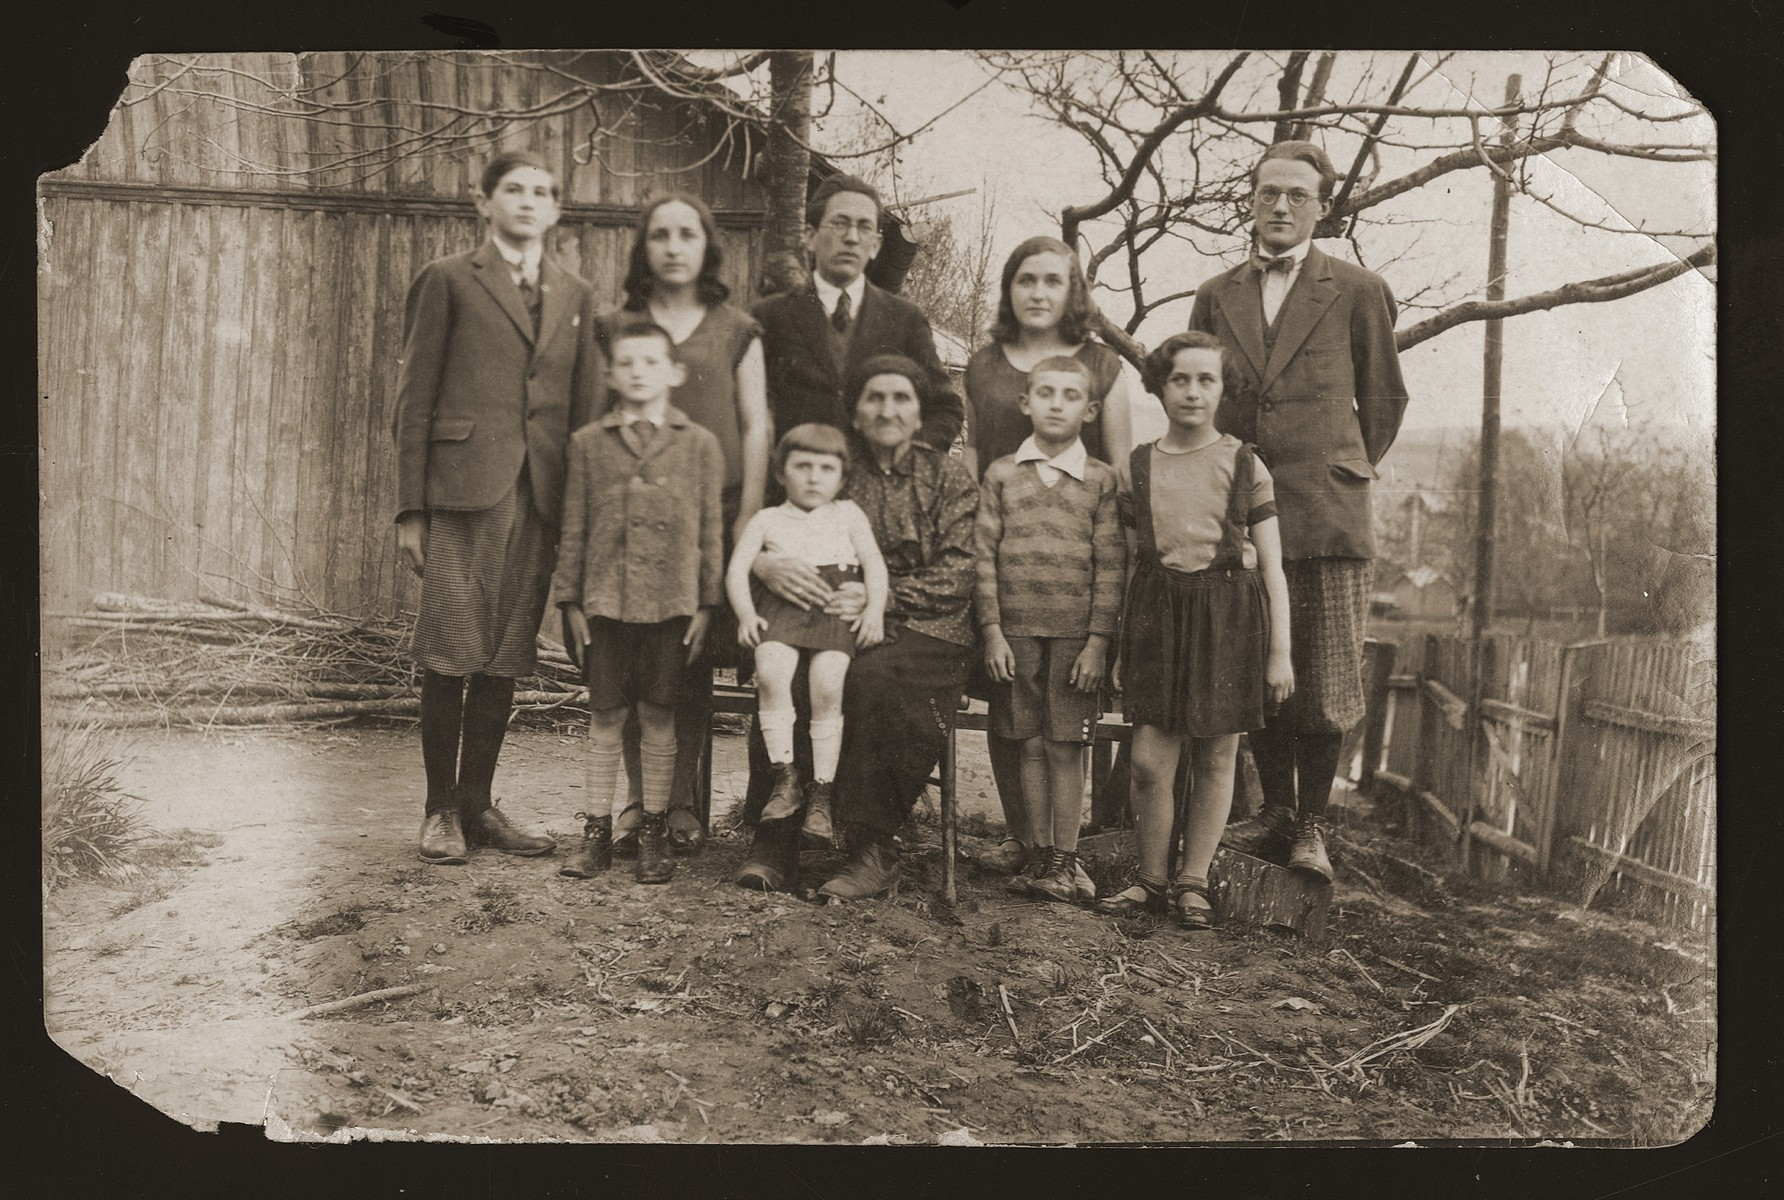 Family portrait of the Gartenberg family in Drohobycz, all of whom later perished in the Holocaust.  Top row: Julius Gartenberg, Anna Fern, Bernard Klinger, Ona Fern and Izador Gartenberg.  Lower row: Marcus Gartenberg, Hinda Gartenberg with her grandaughter Tony Schwartz on her lap, Sol Schwartz, and Ida Fern.